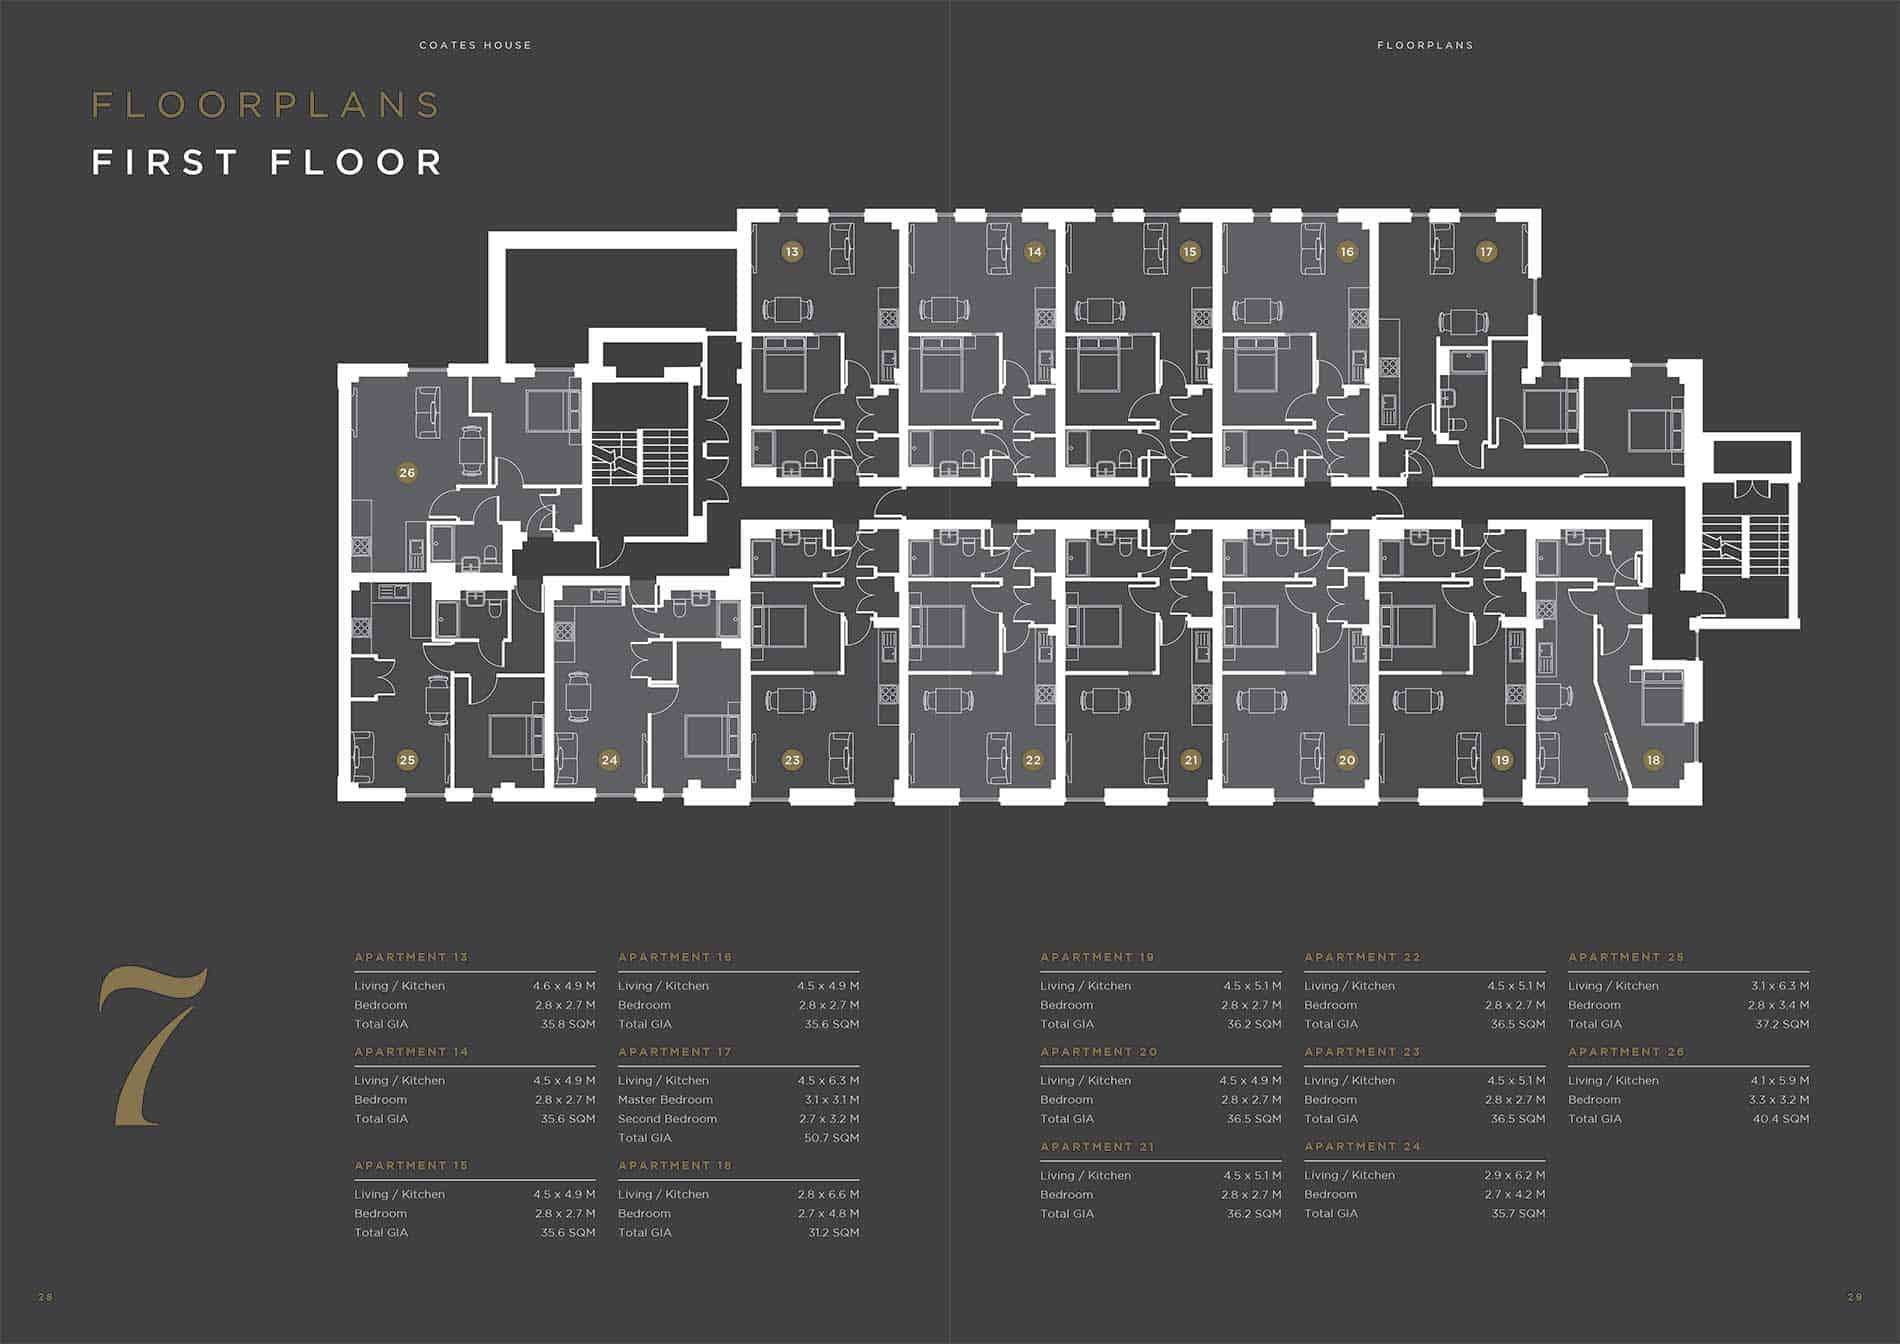 Coates House Bristol UK: Ocea First Floorplan: Commercial to Residential Property Conversion Apartment